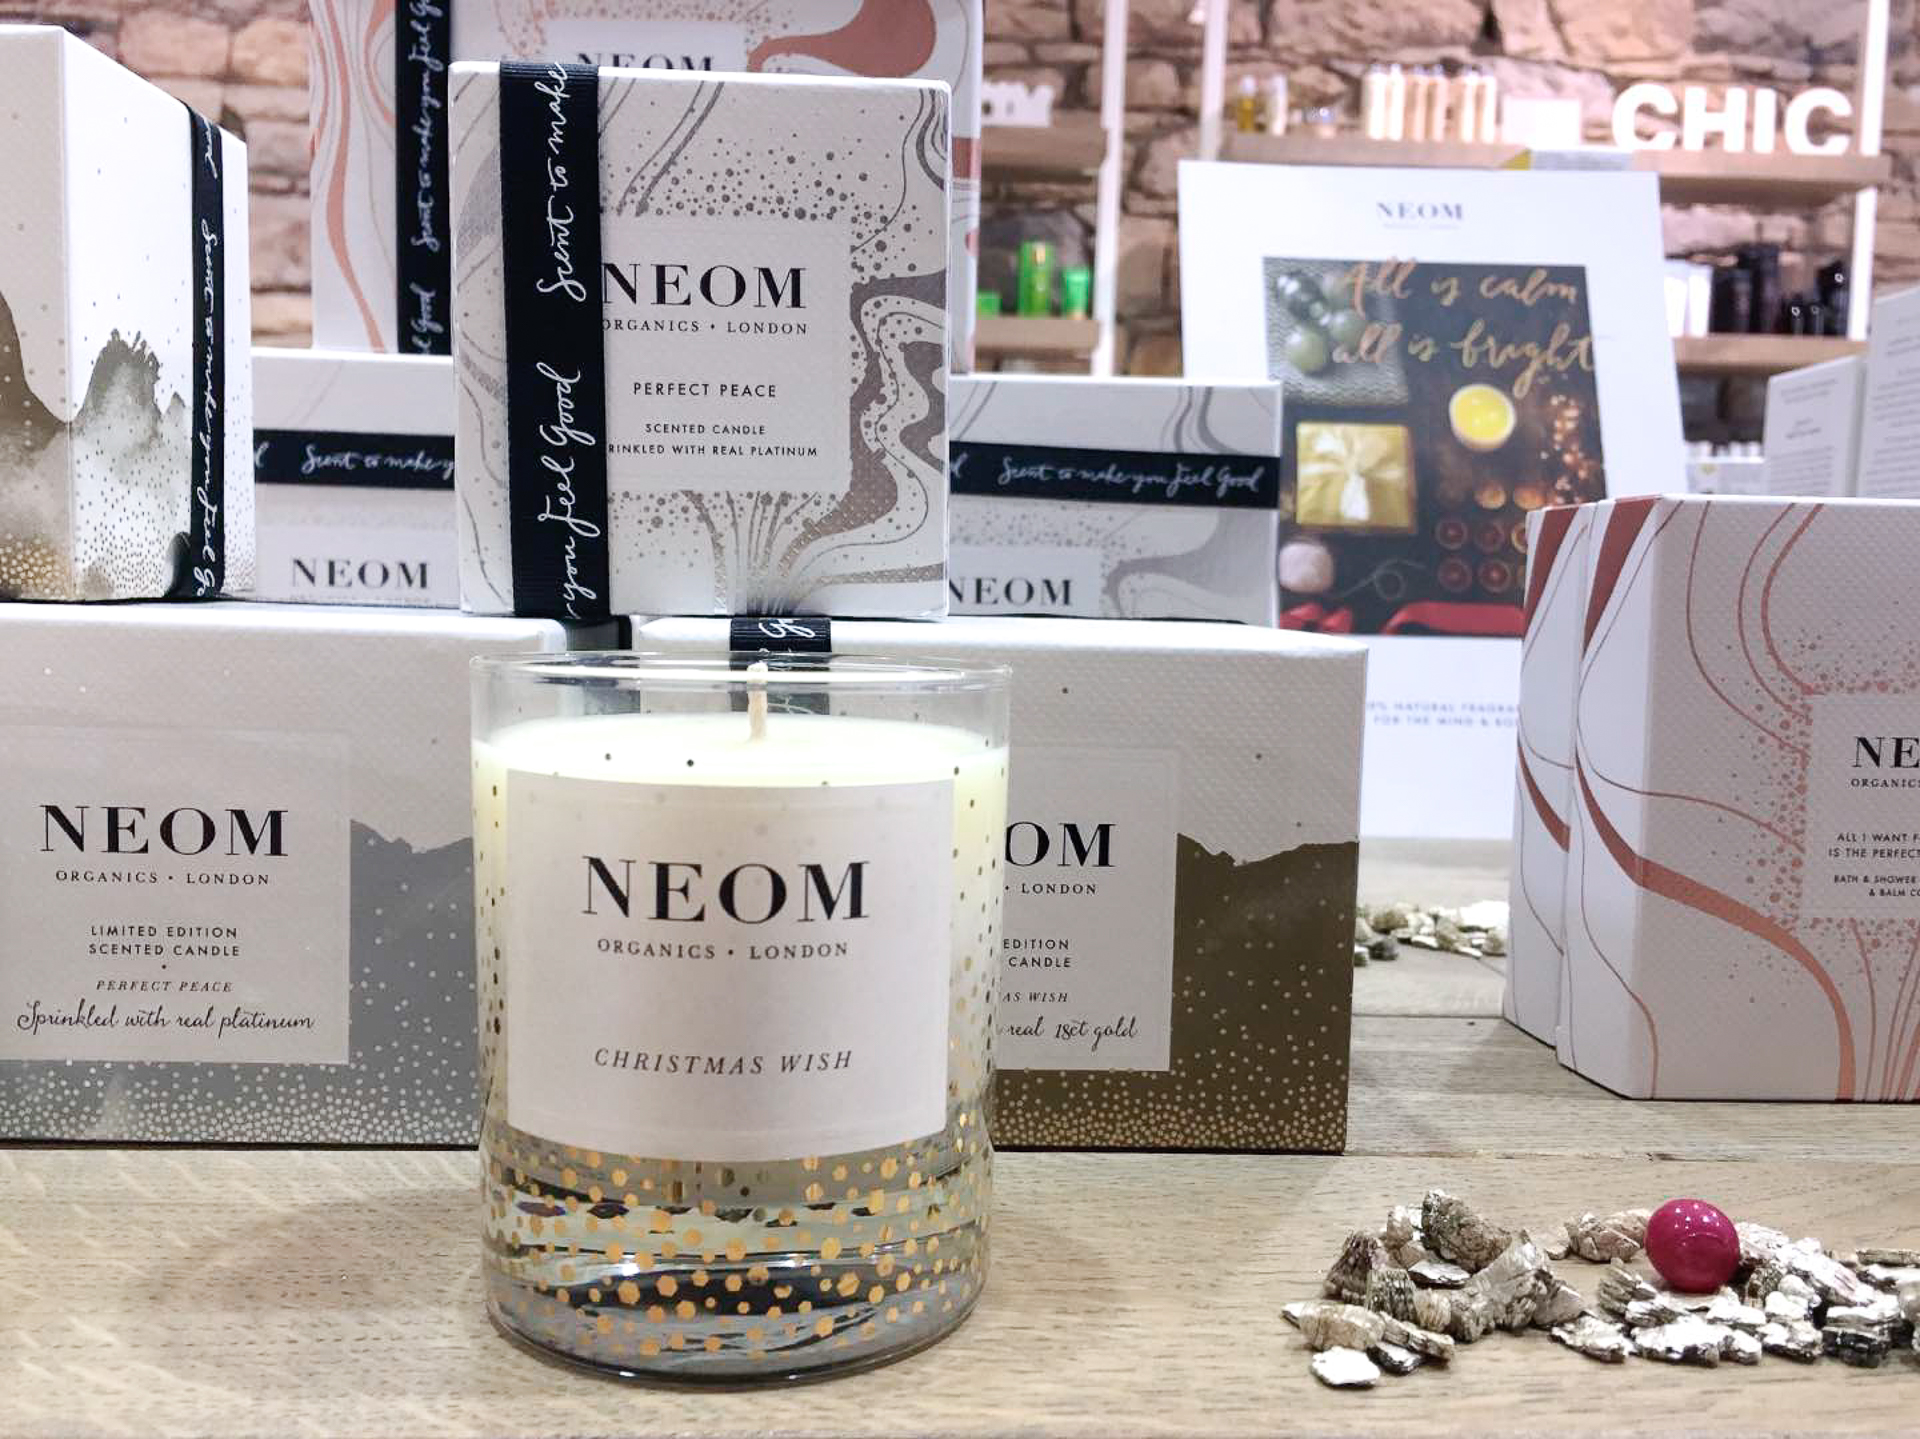 Neom Bougie - Mange Brille Aime